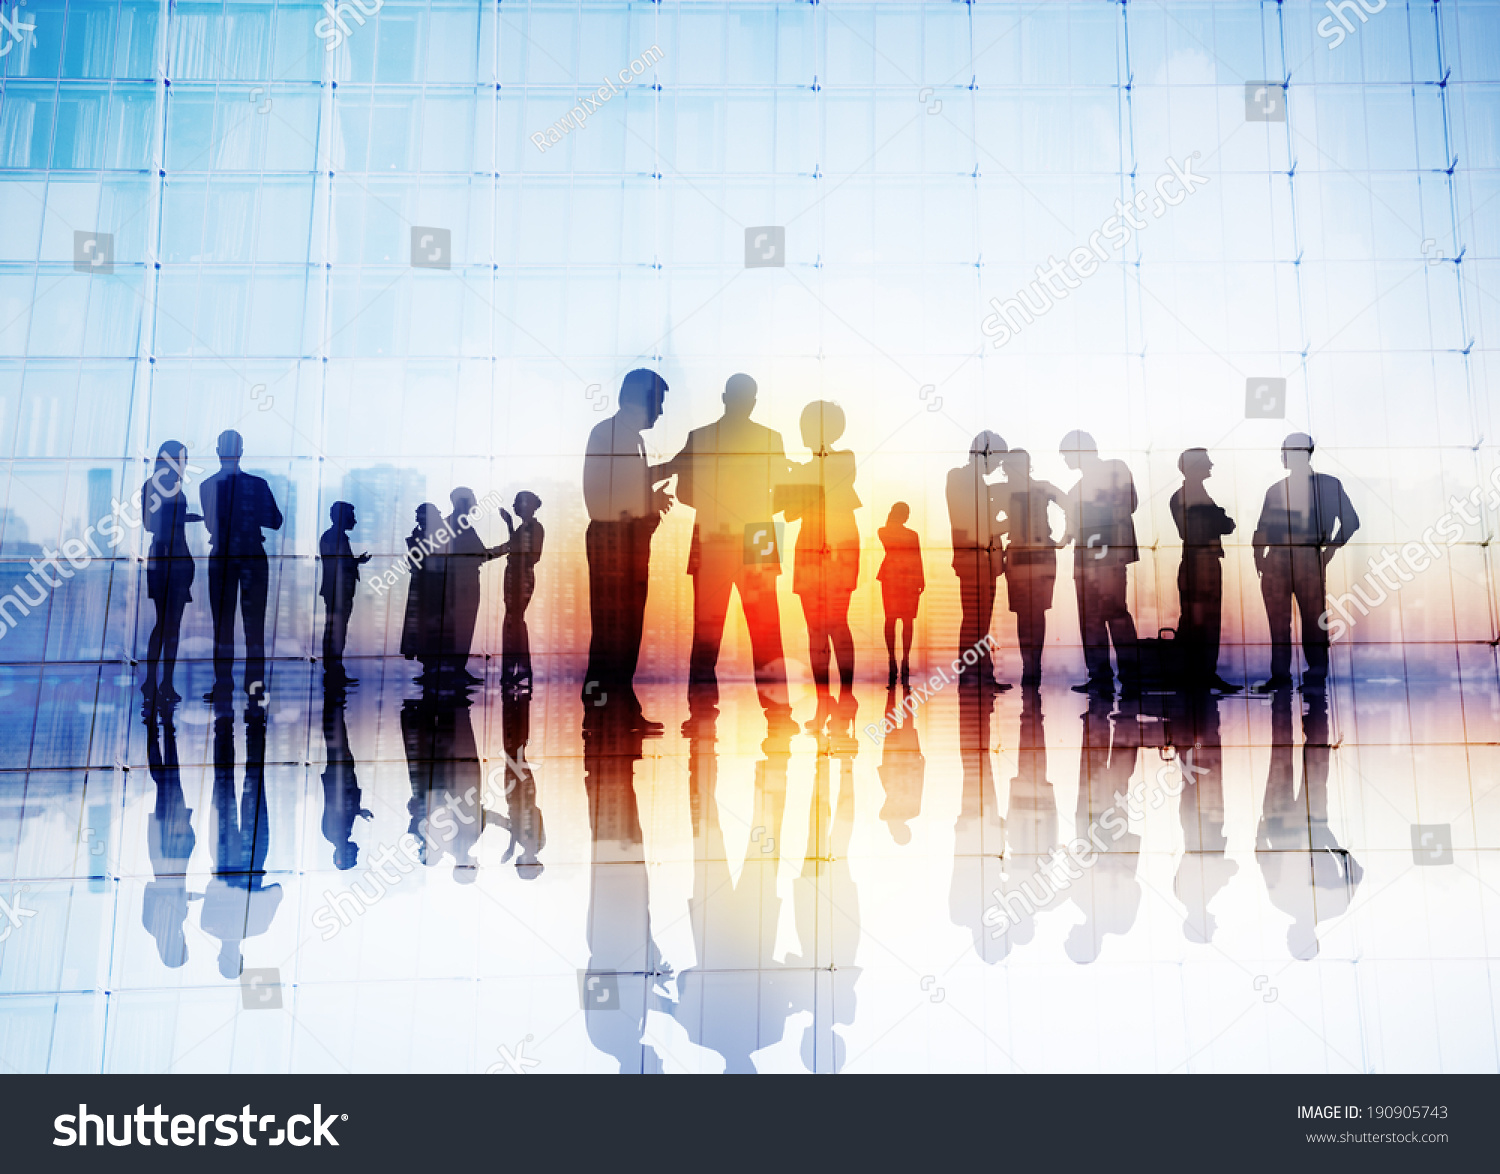 Conference Online Image Amp Photo Editor Shutterstock Editor